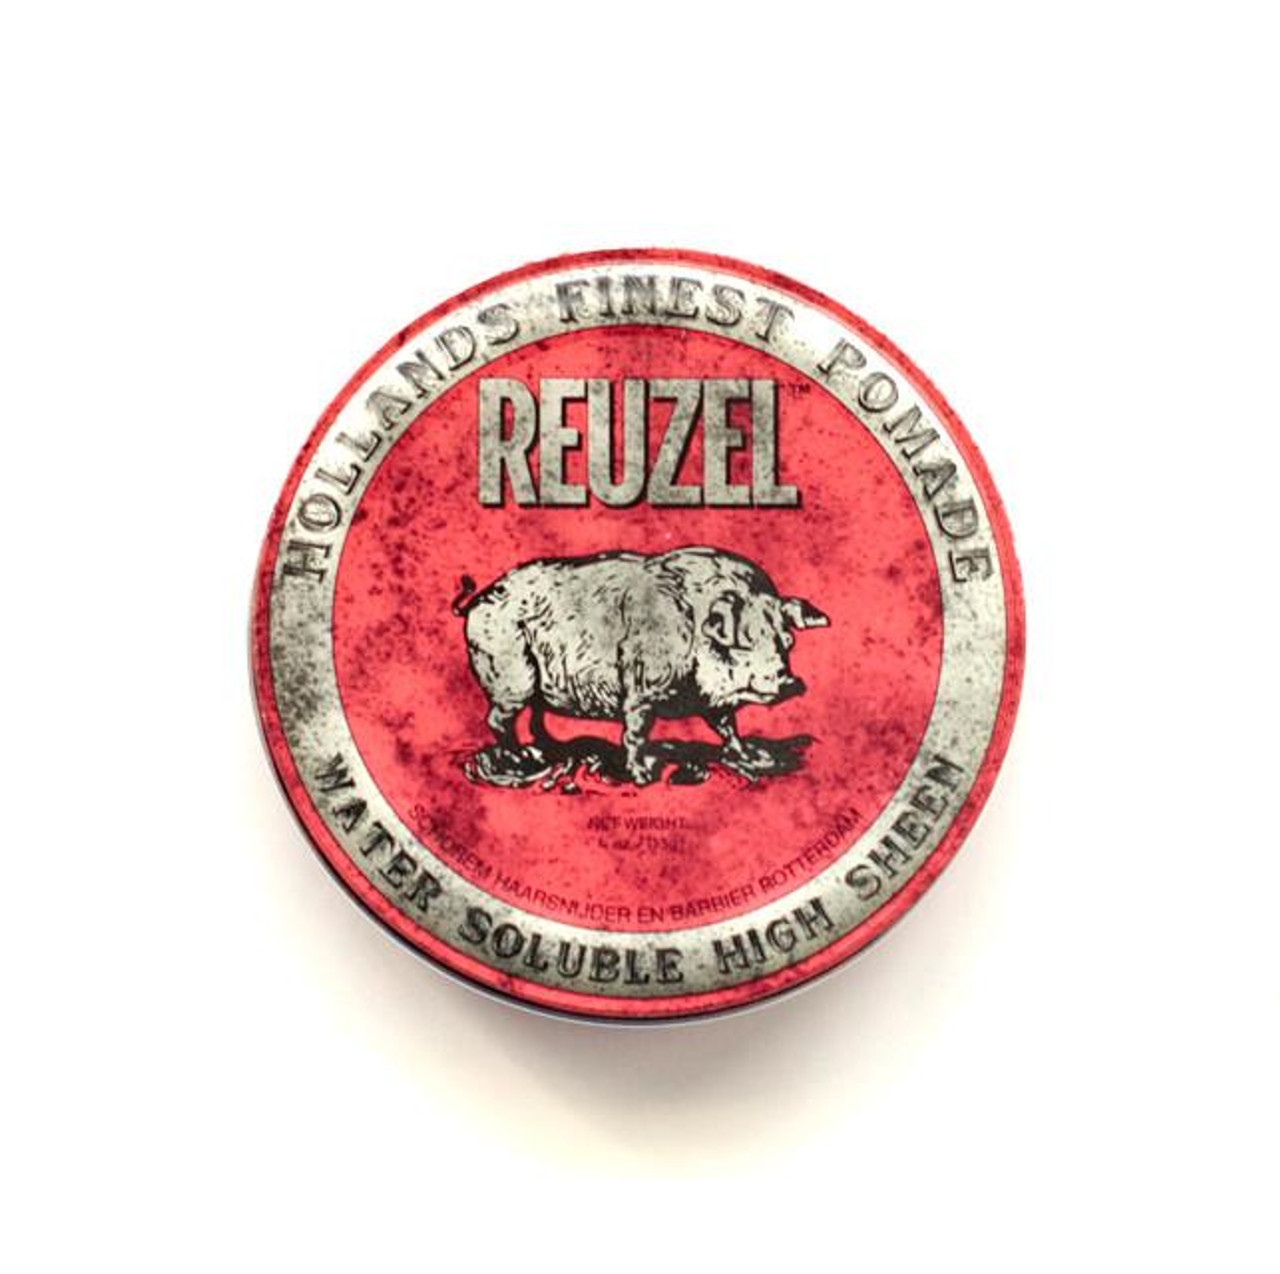 reuzel high sheen pomade - chicago haircut & grooming services